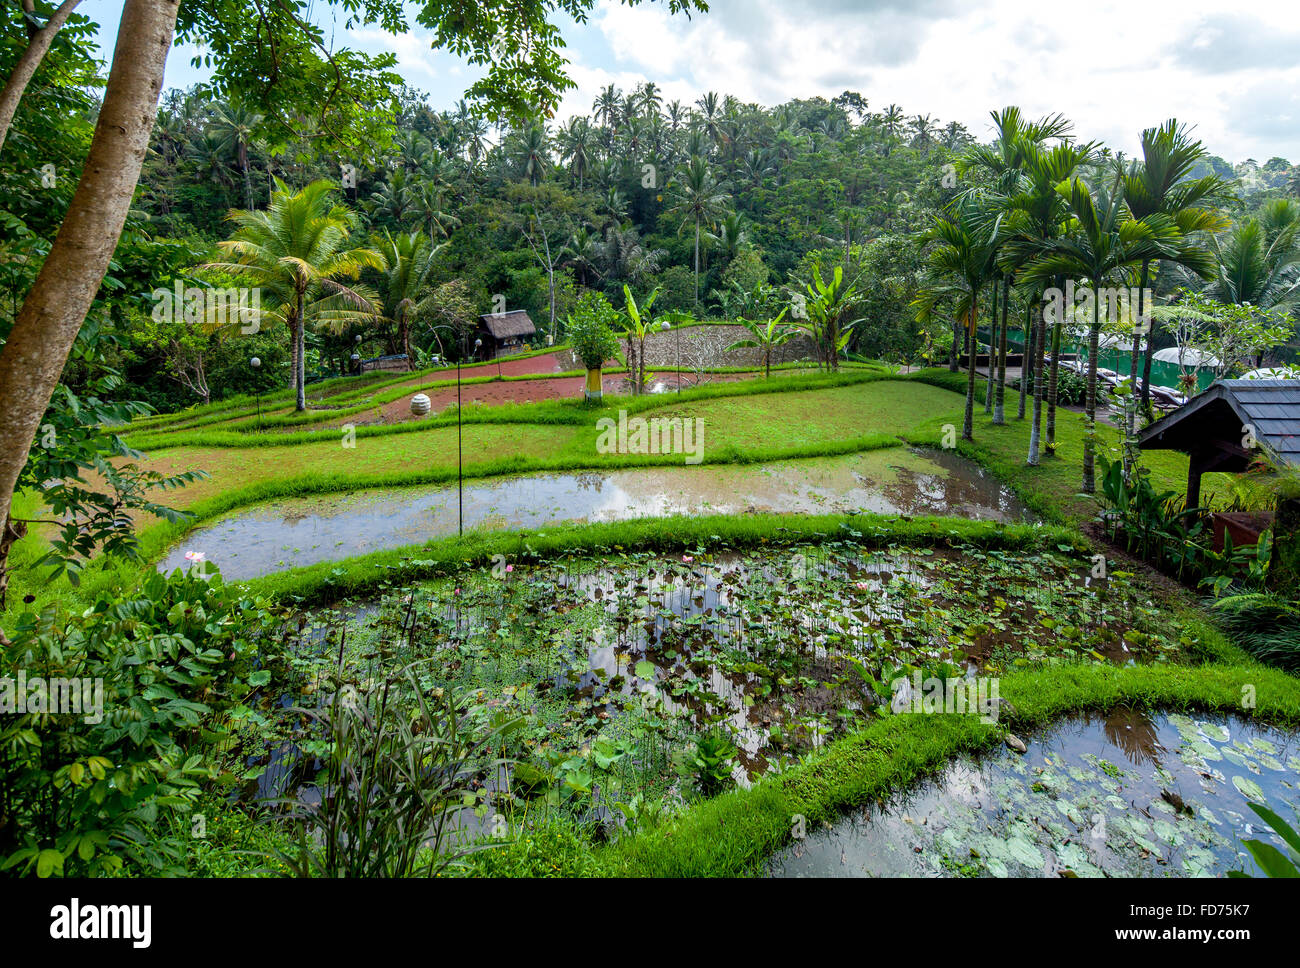 Hotel complex in a good city hotel in Ubud, palm trees, water surfaces, Ubud, Bali, Indonesia, Asia Stock Photo